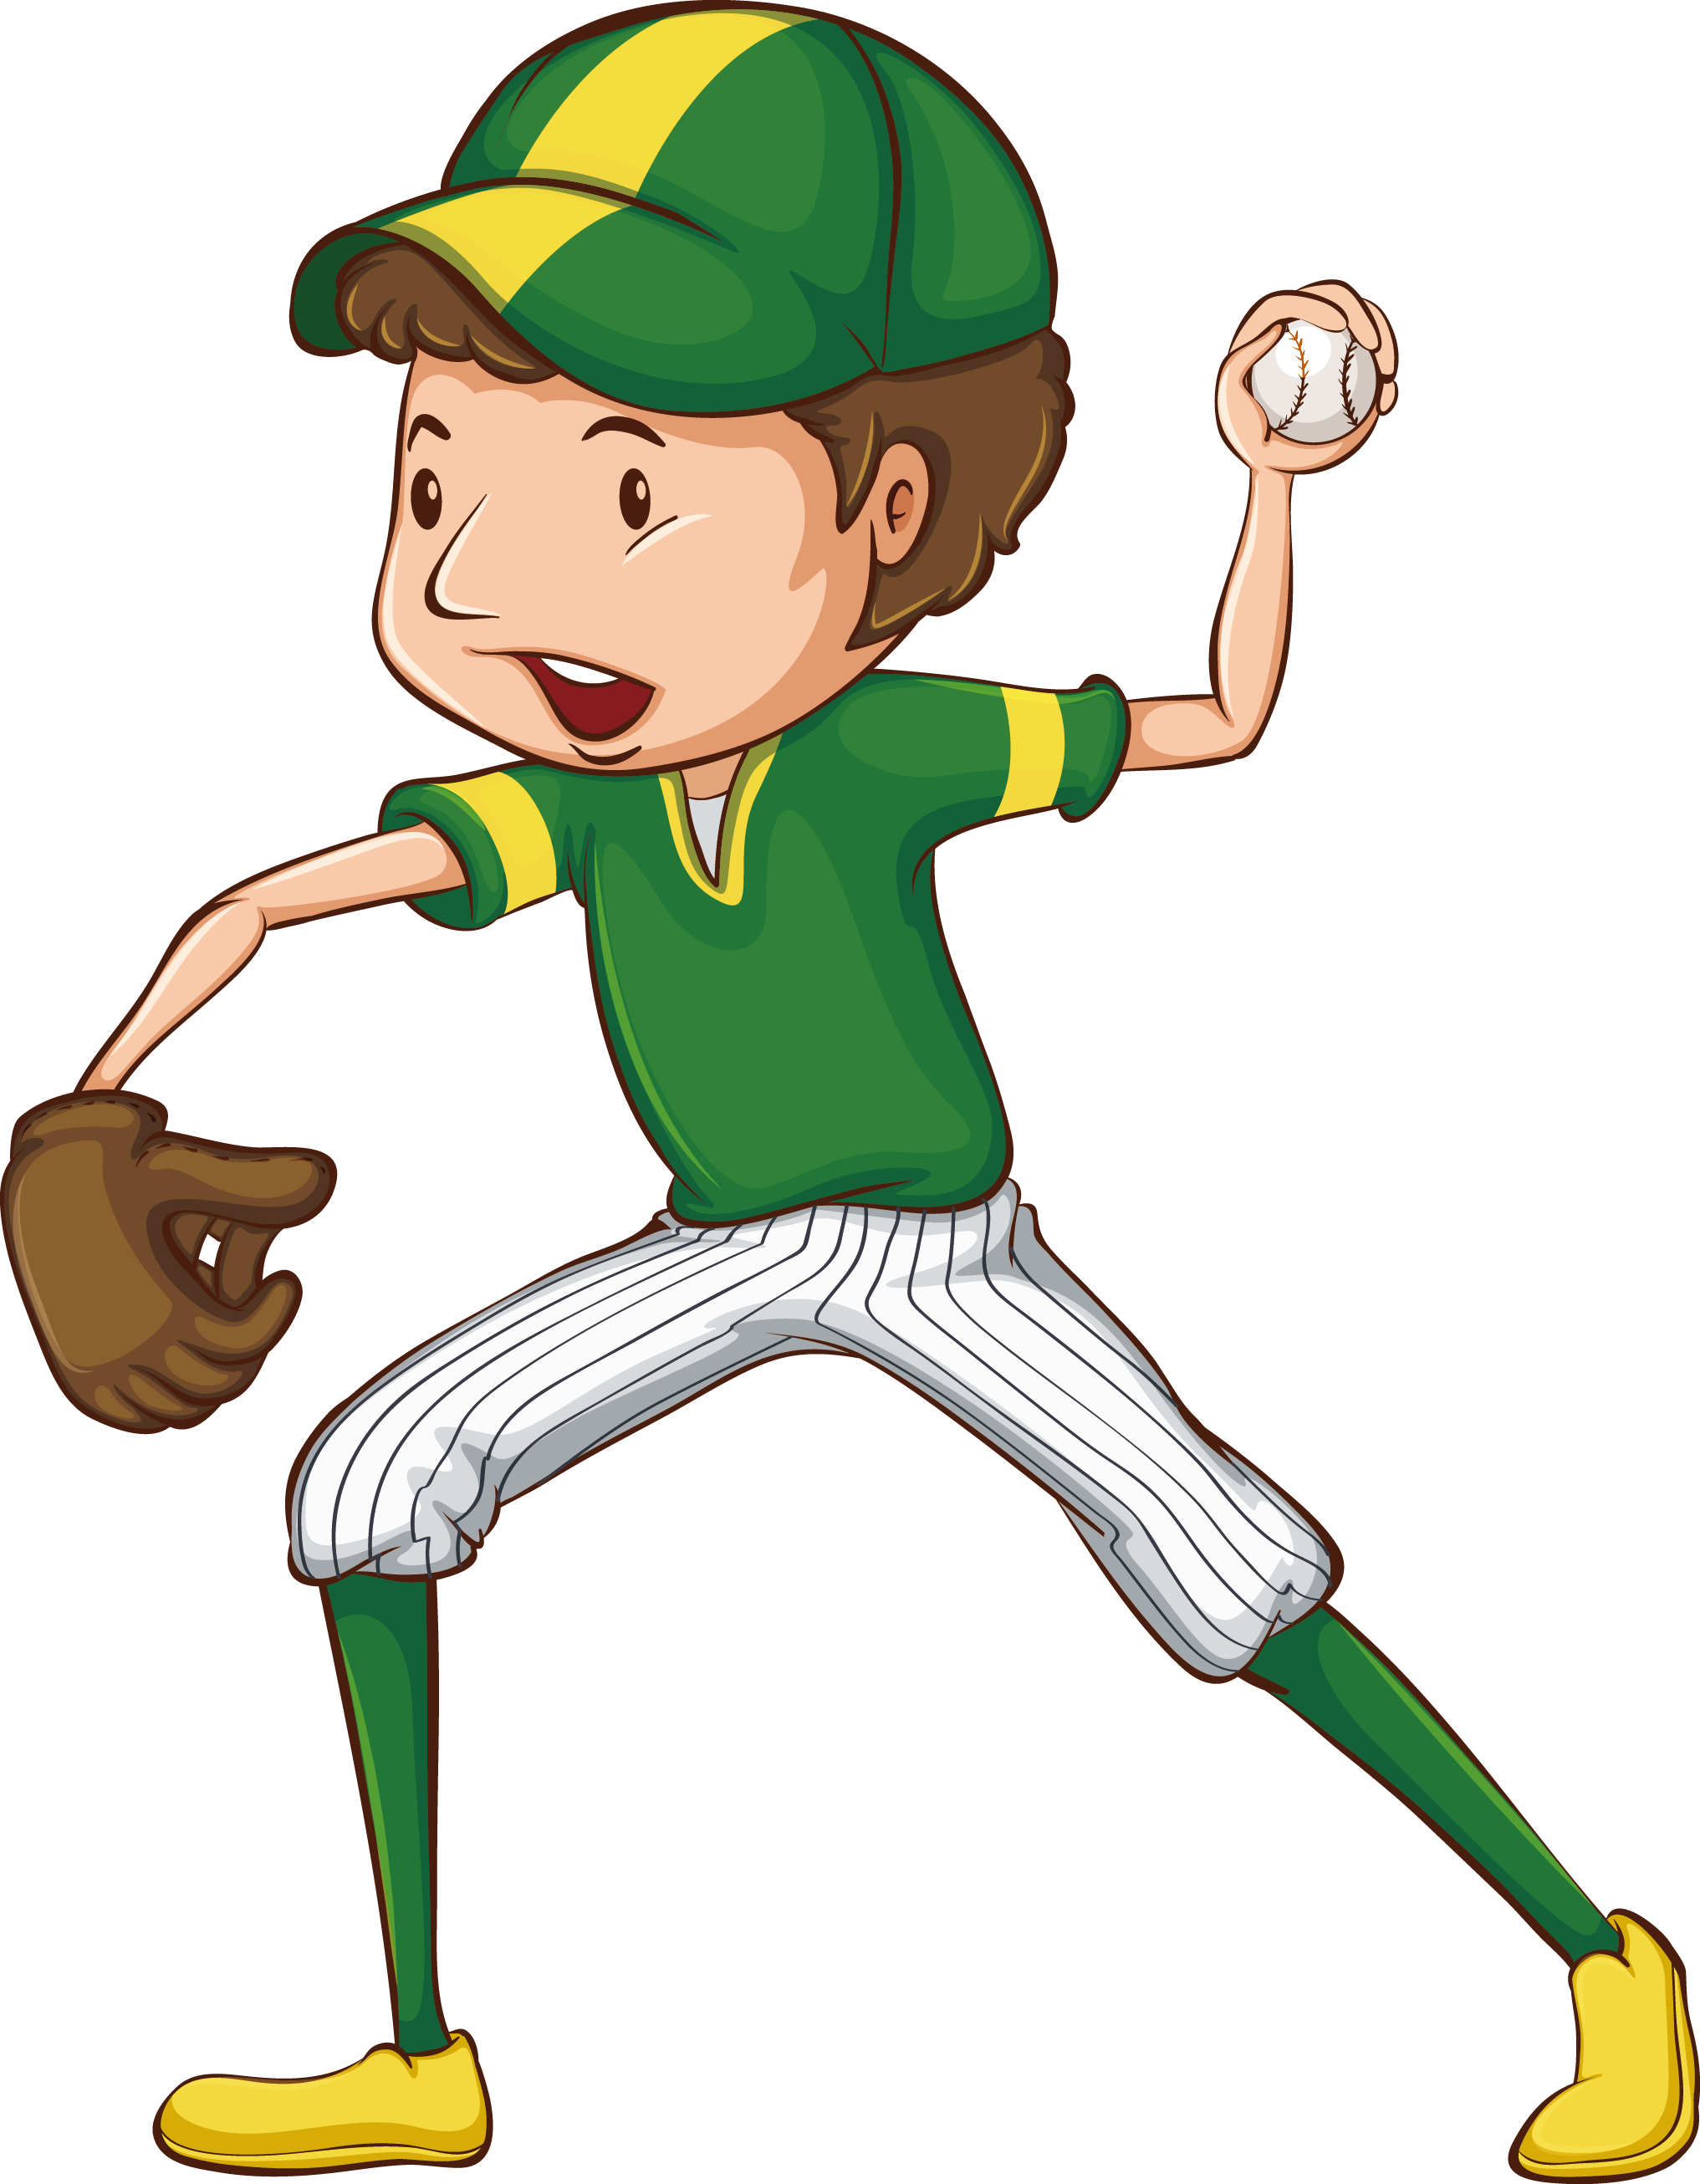 Baseball play offs clipart vector black and white library Baseball player Drawing Clip art - Green Junior Baseball Tournament ... vector black and white library